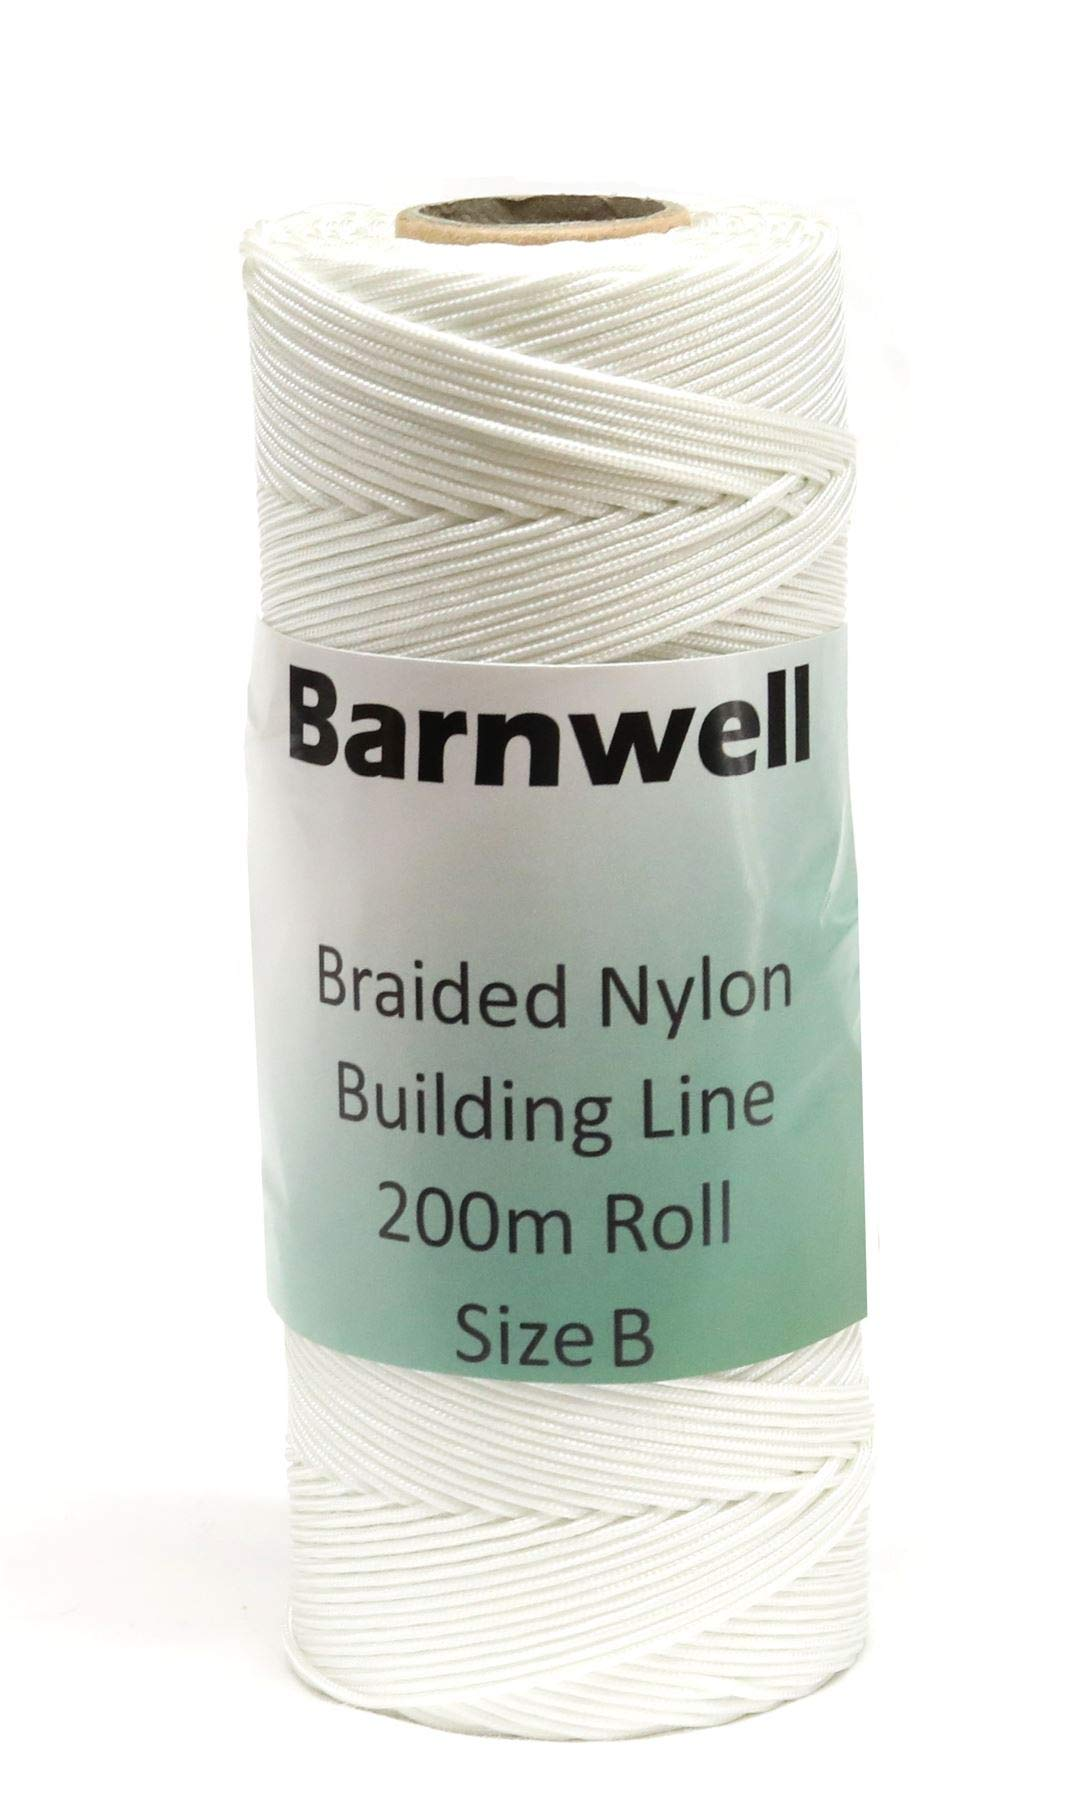 Barnwell Braided Nylon Chalk Brick Building Line Large 200m (656ft) Roll Size B Thicker by Barnwell (Image #1)